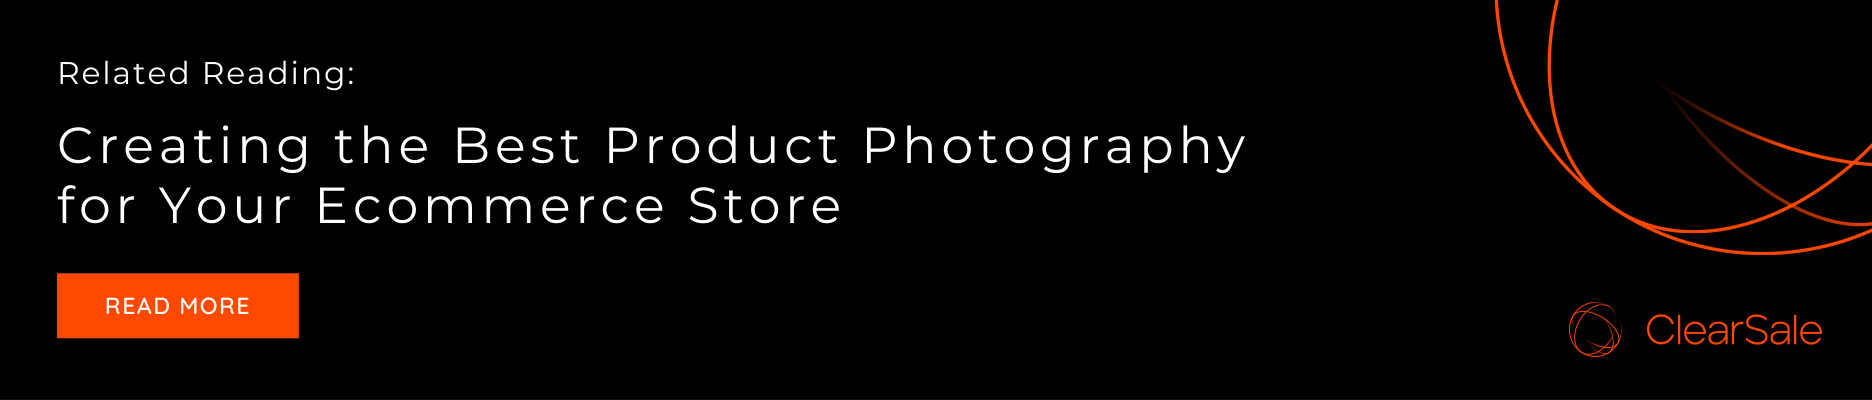 Related Reading: Creating the Best Product Photography for Your e-Commerce Store